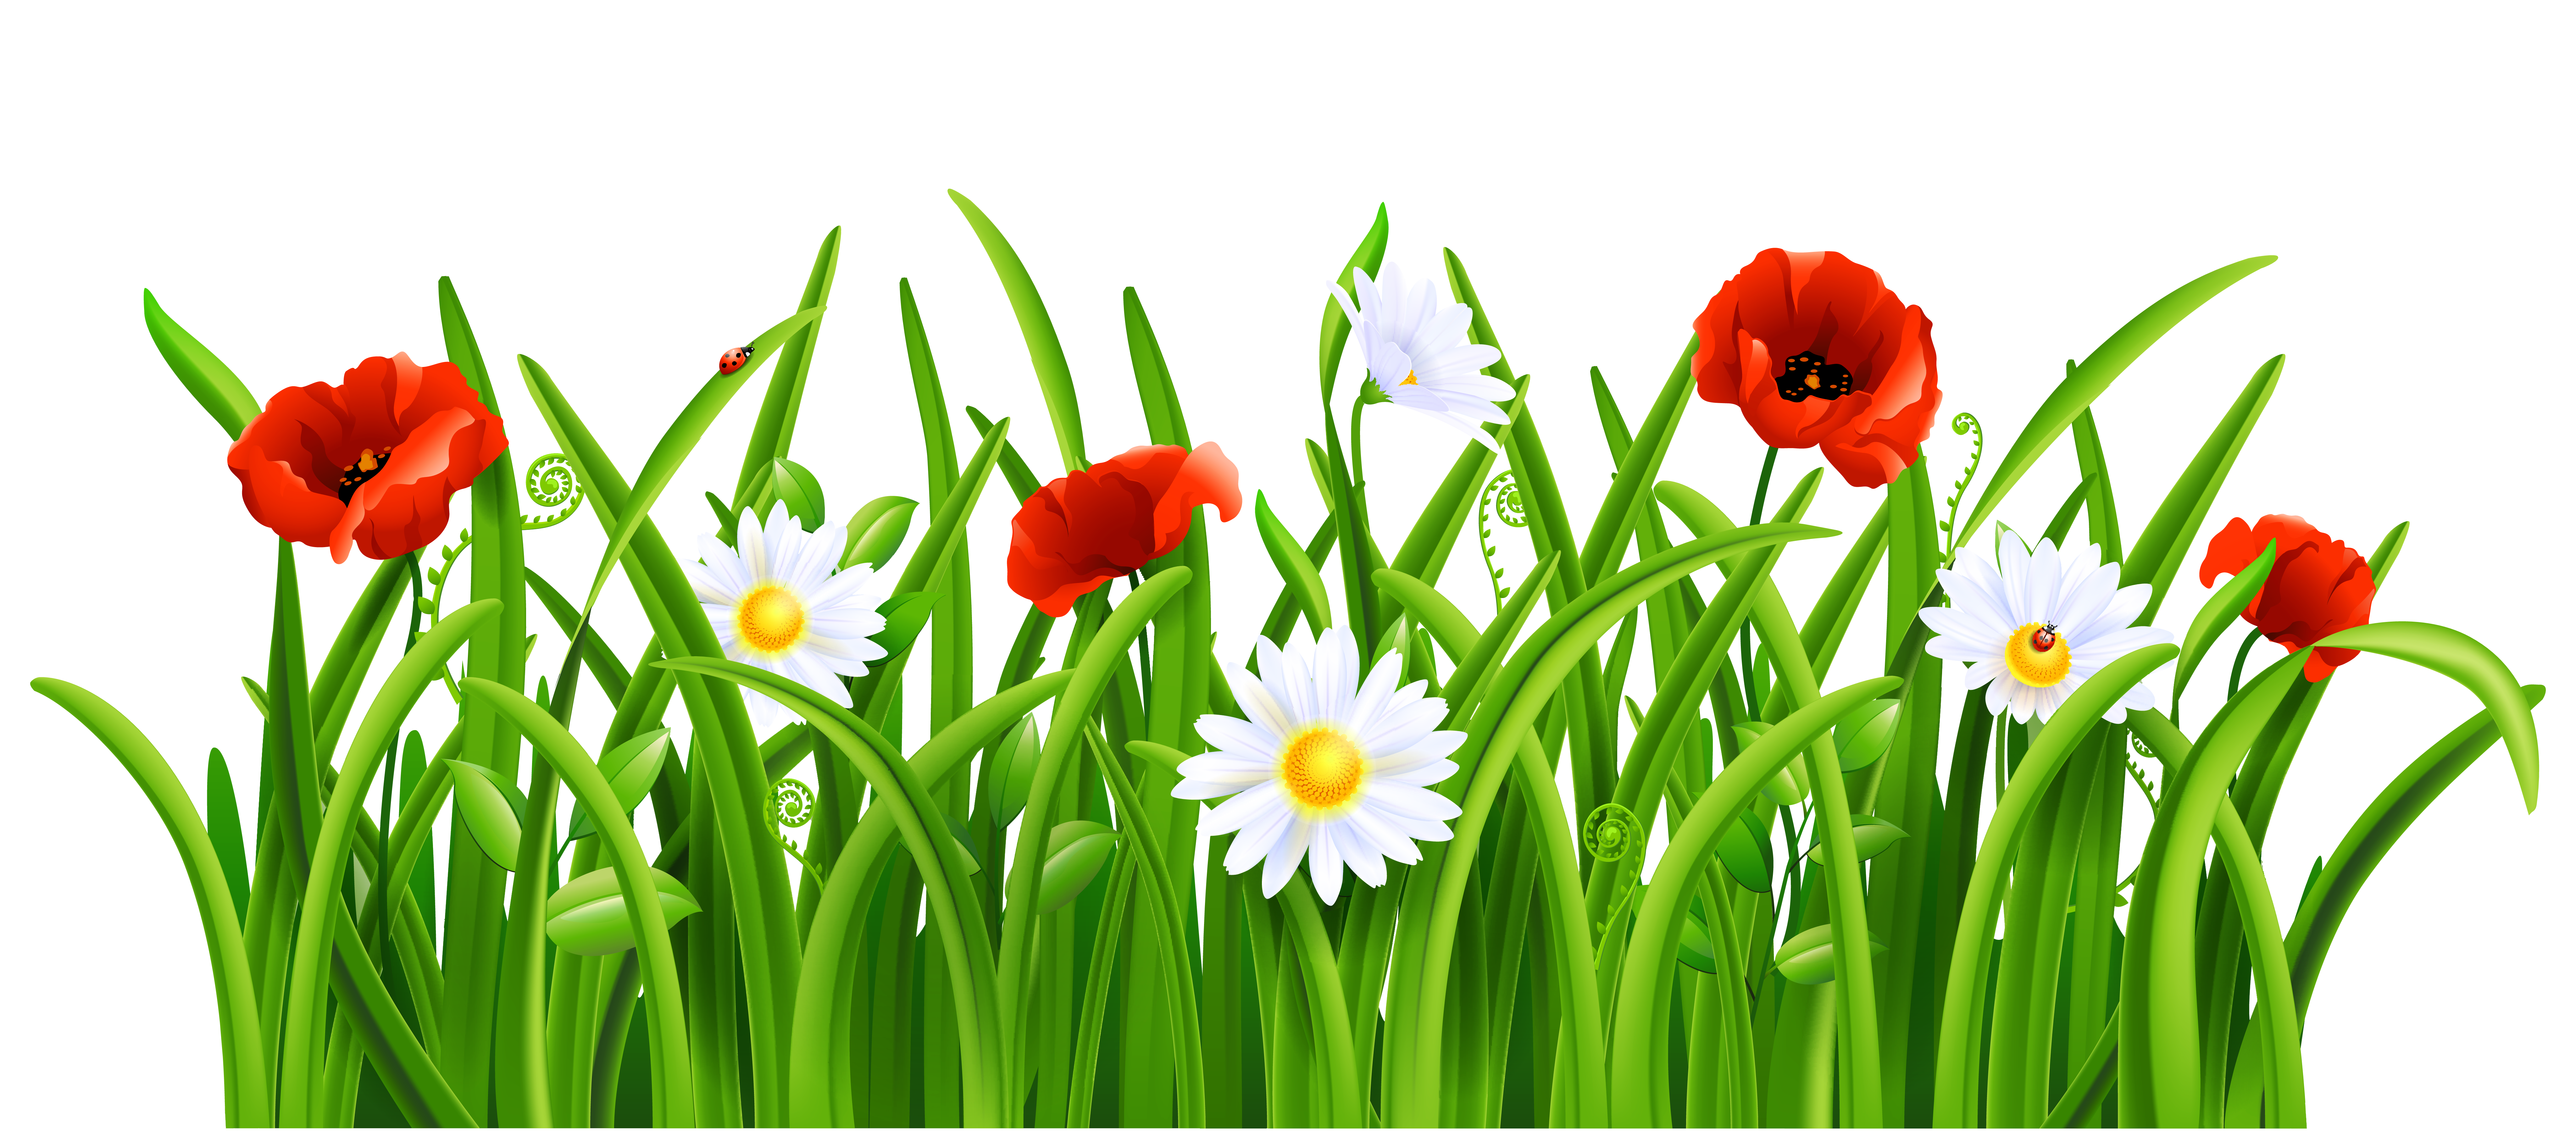 Grass Background Png Grass Png Clipart Picture